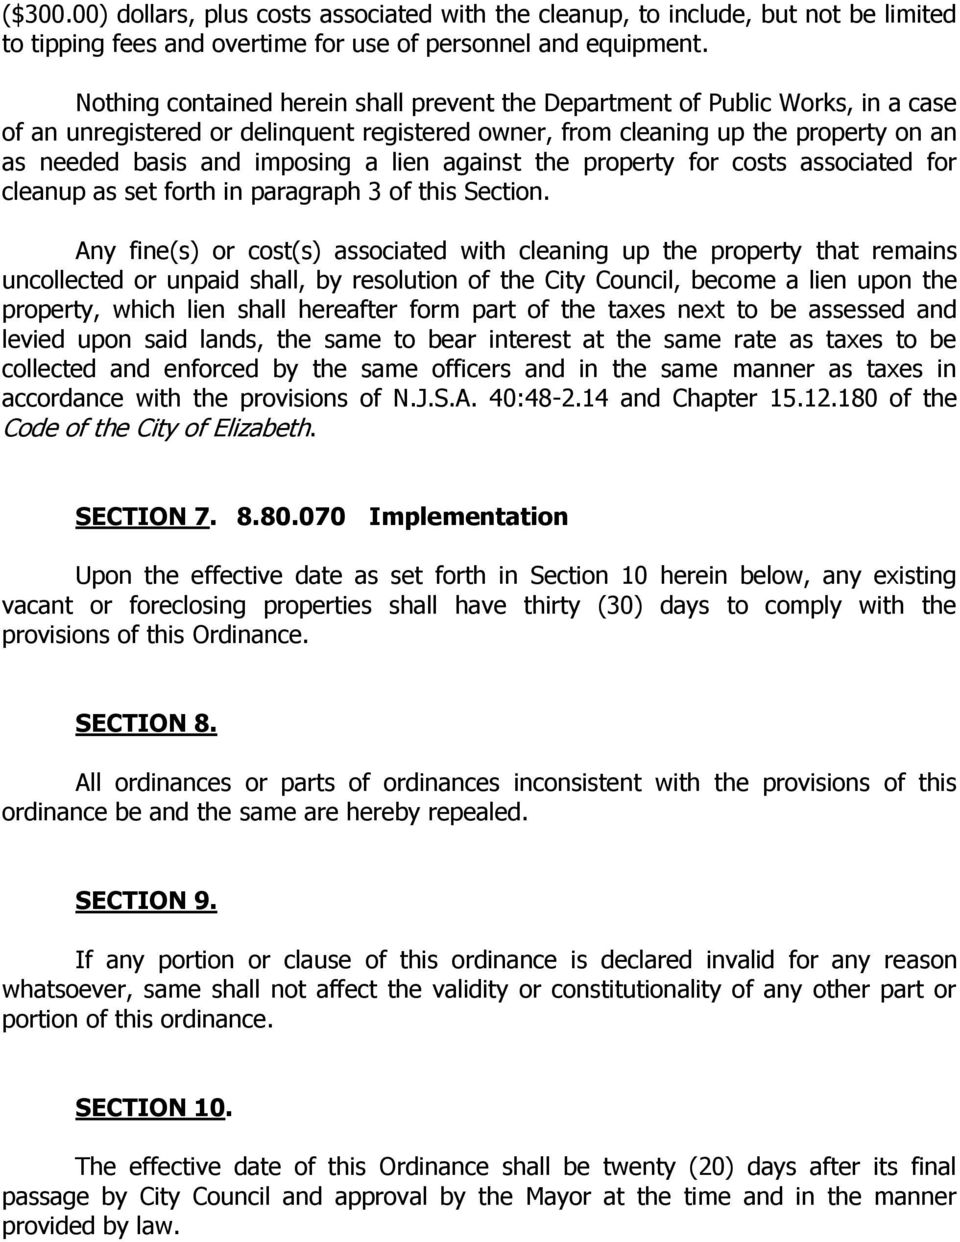 lien against the property for costs associated for cleanup as set forth in paragraph 3 of this Section.